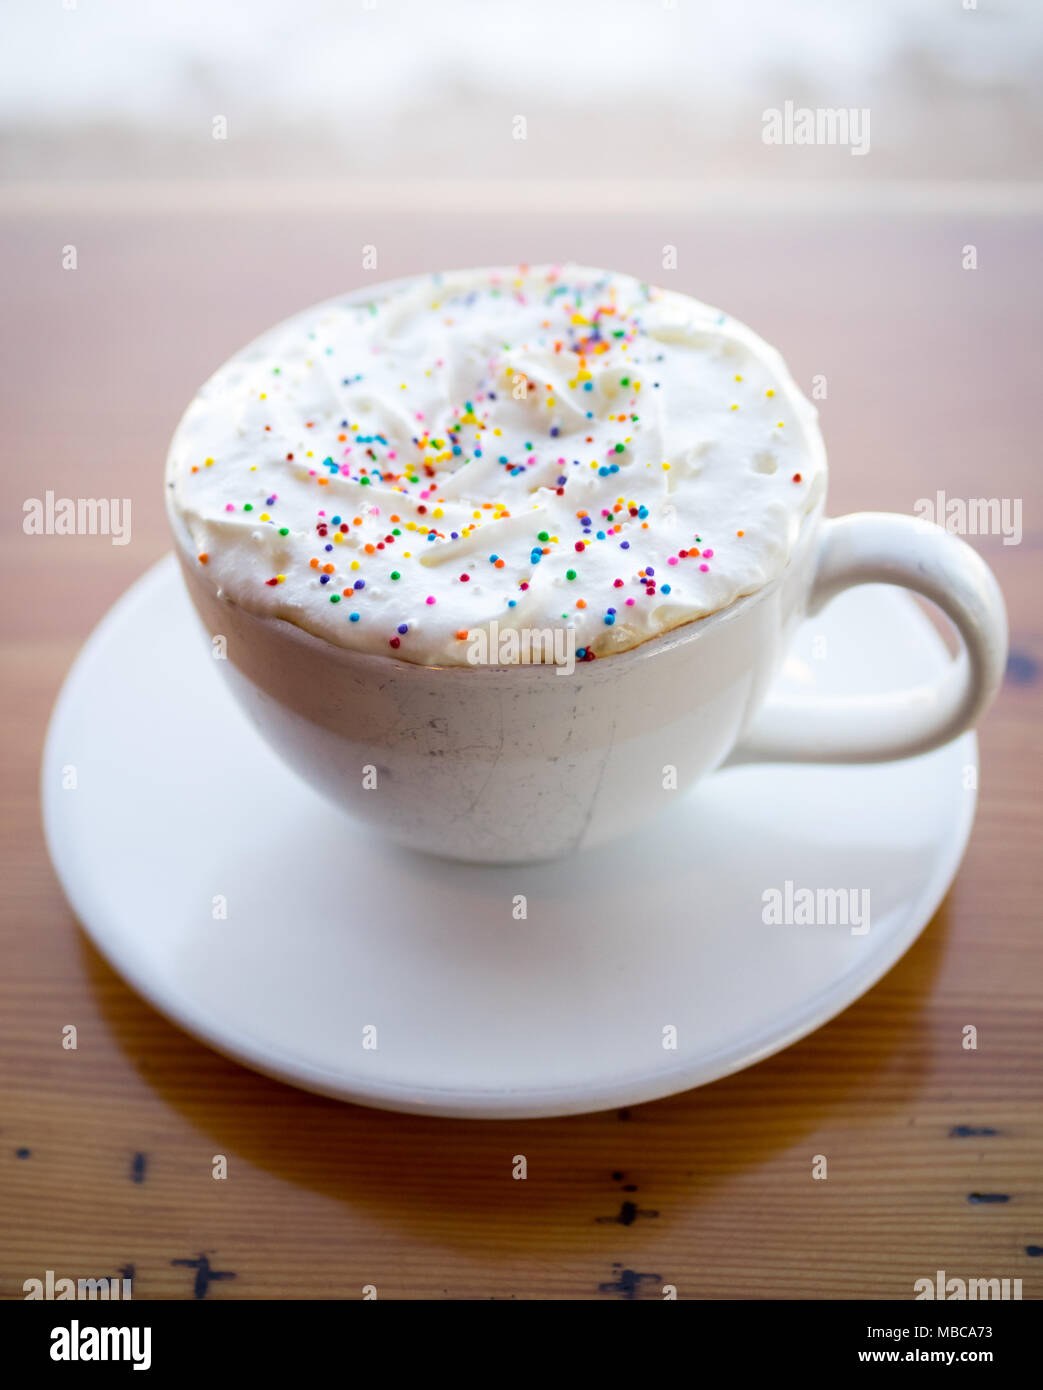 Superb A Birthday Cake Latte From Dlish By Tish Cafe In Saskatoon Funny Birthday Cards Online Chimdamsfinfo